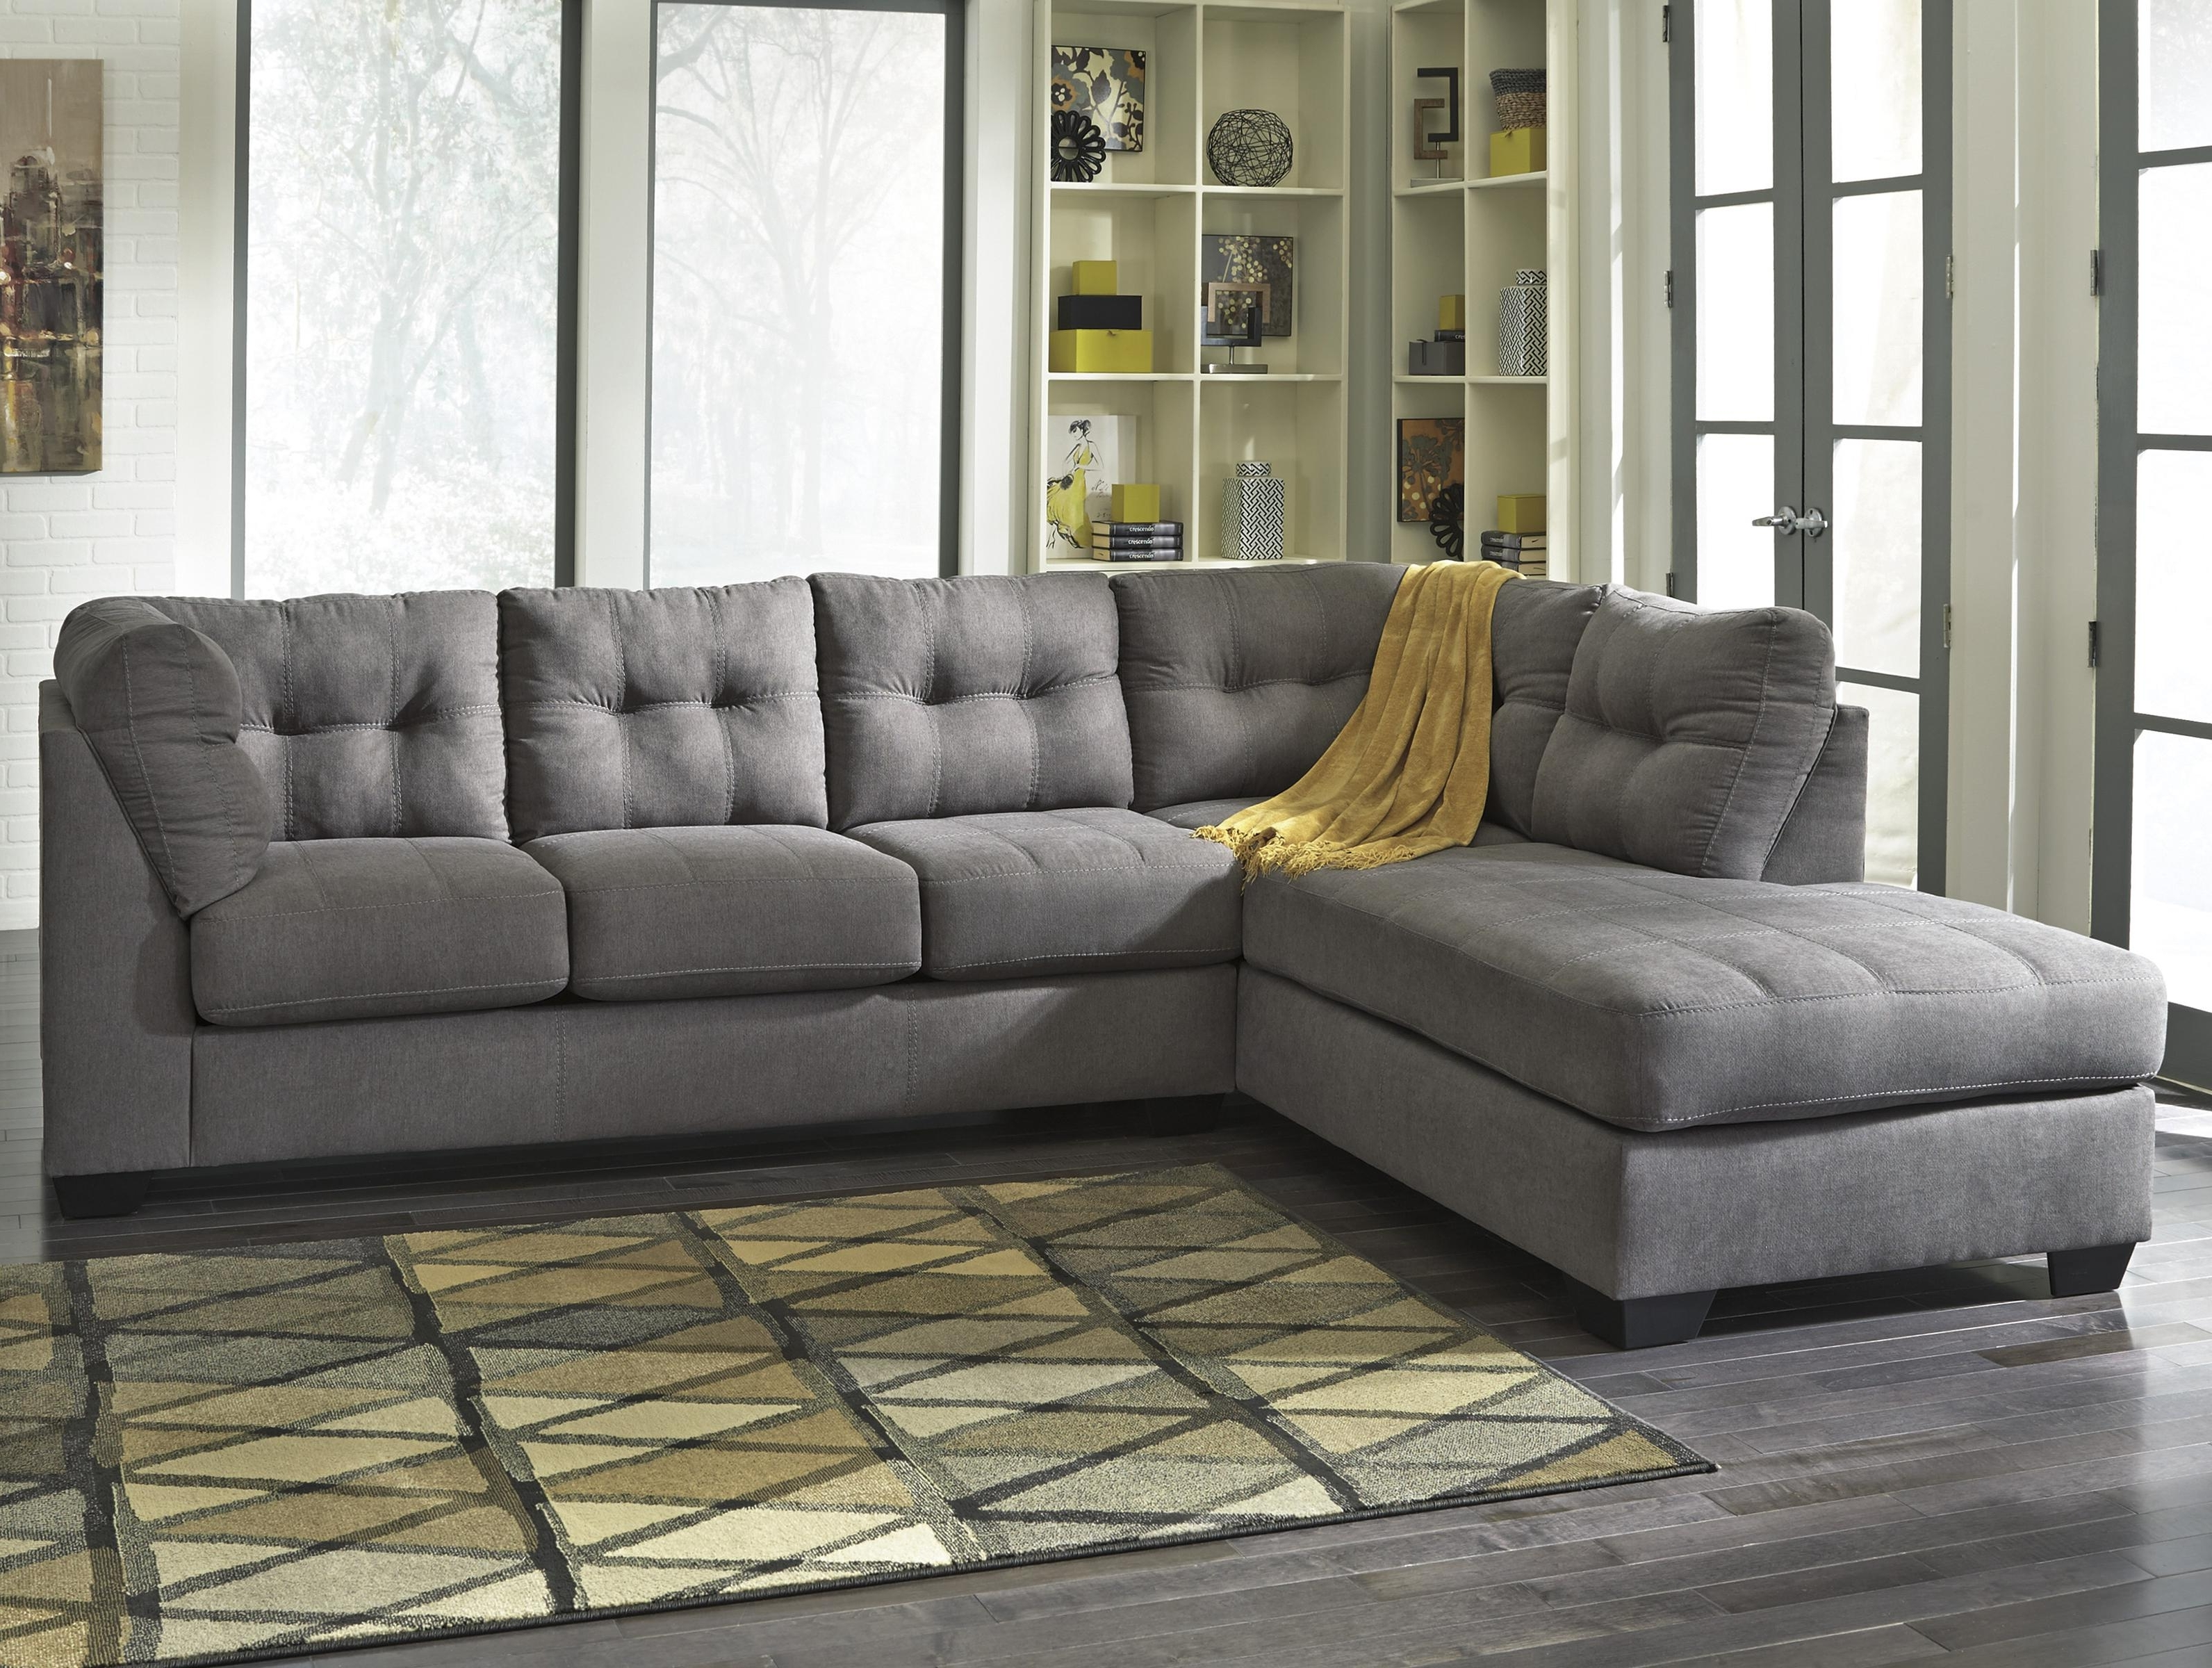 Benchcraftashley Maier – Charcoal 2 Piece Sectional With Left Pertaining To Recent Sectional Sofas At Birmingham Al (View 3 of 15)